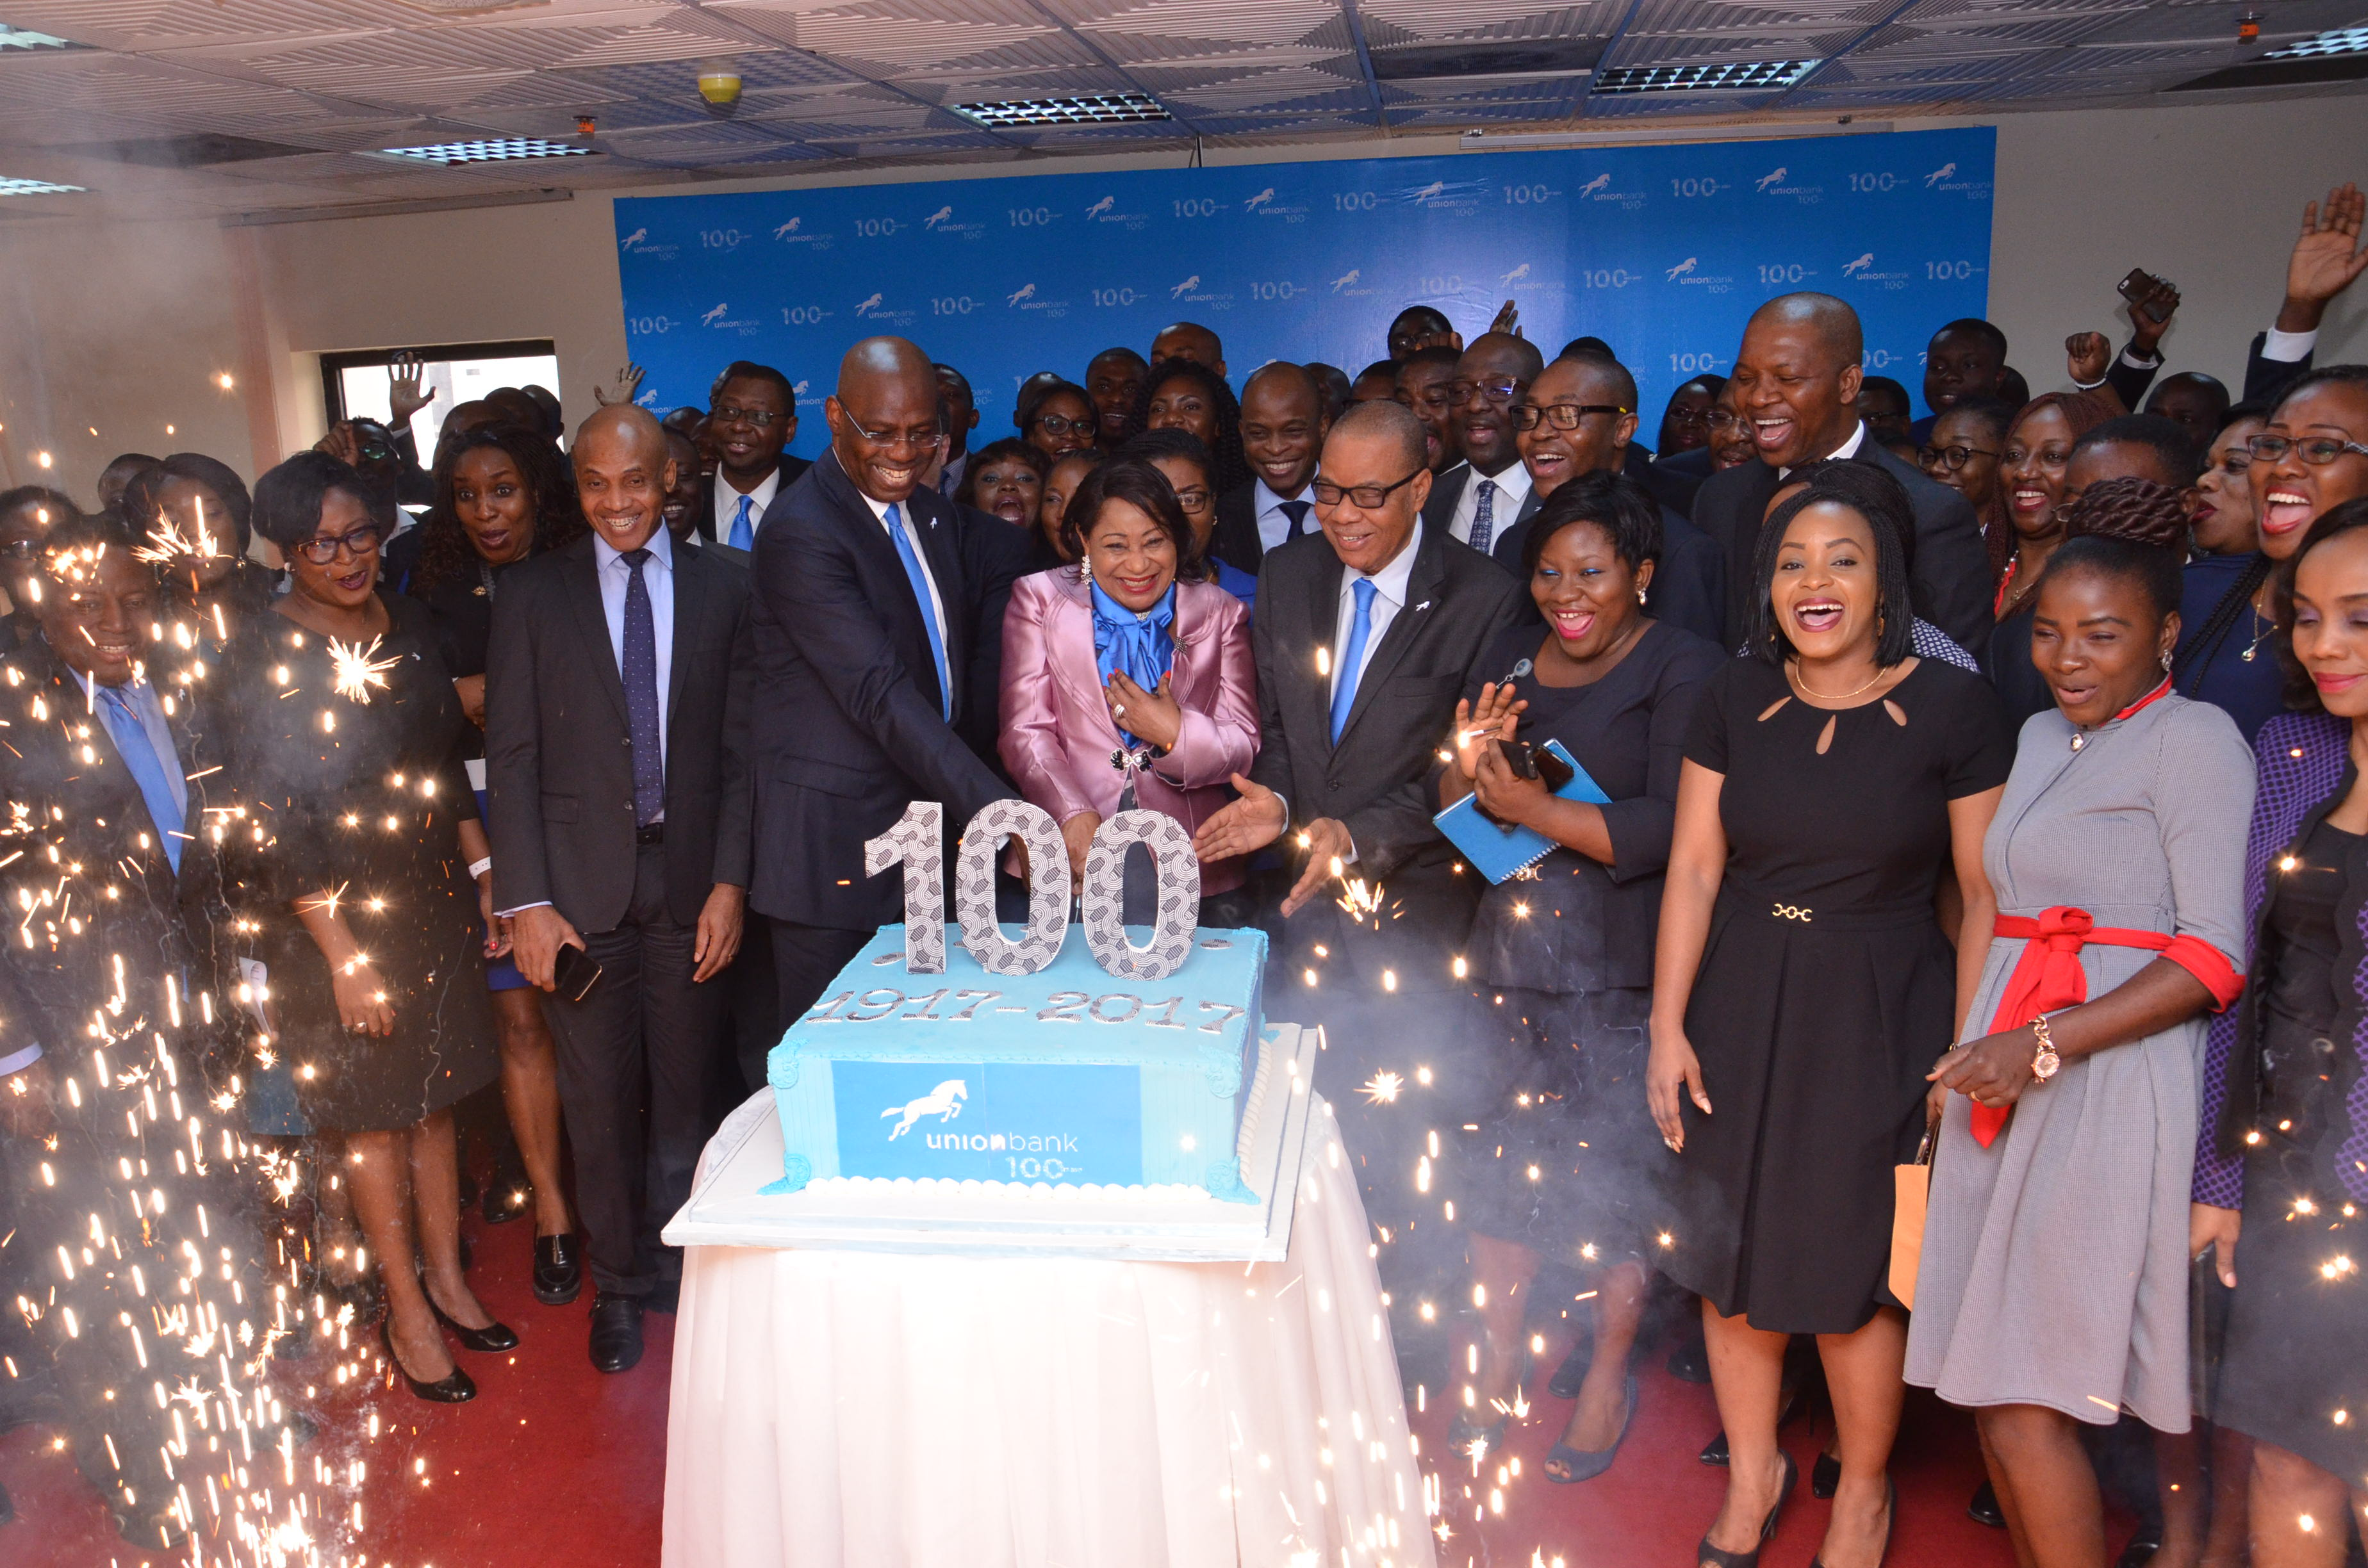 Celebrating Union Bank's 100-Year Anniversary